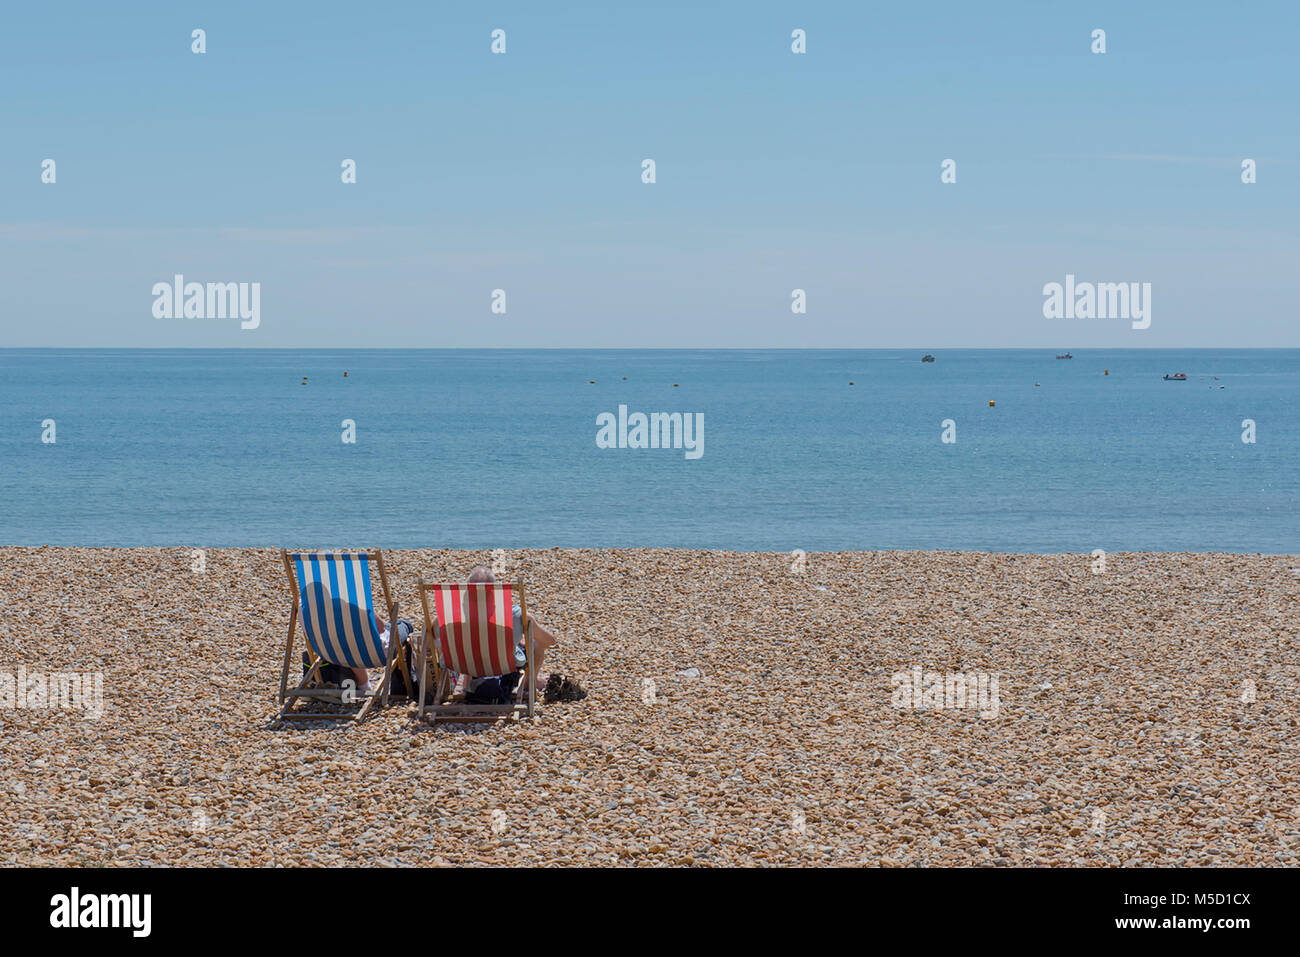 Soaring temperatures on the South Coast of England as Couple relax on traditional striped deckchairs with parasol - Stock Image